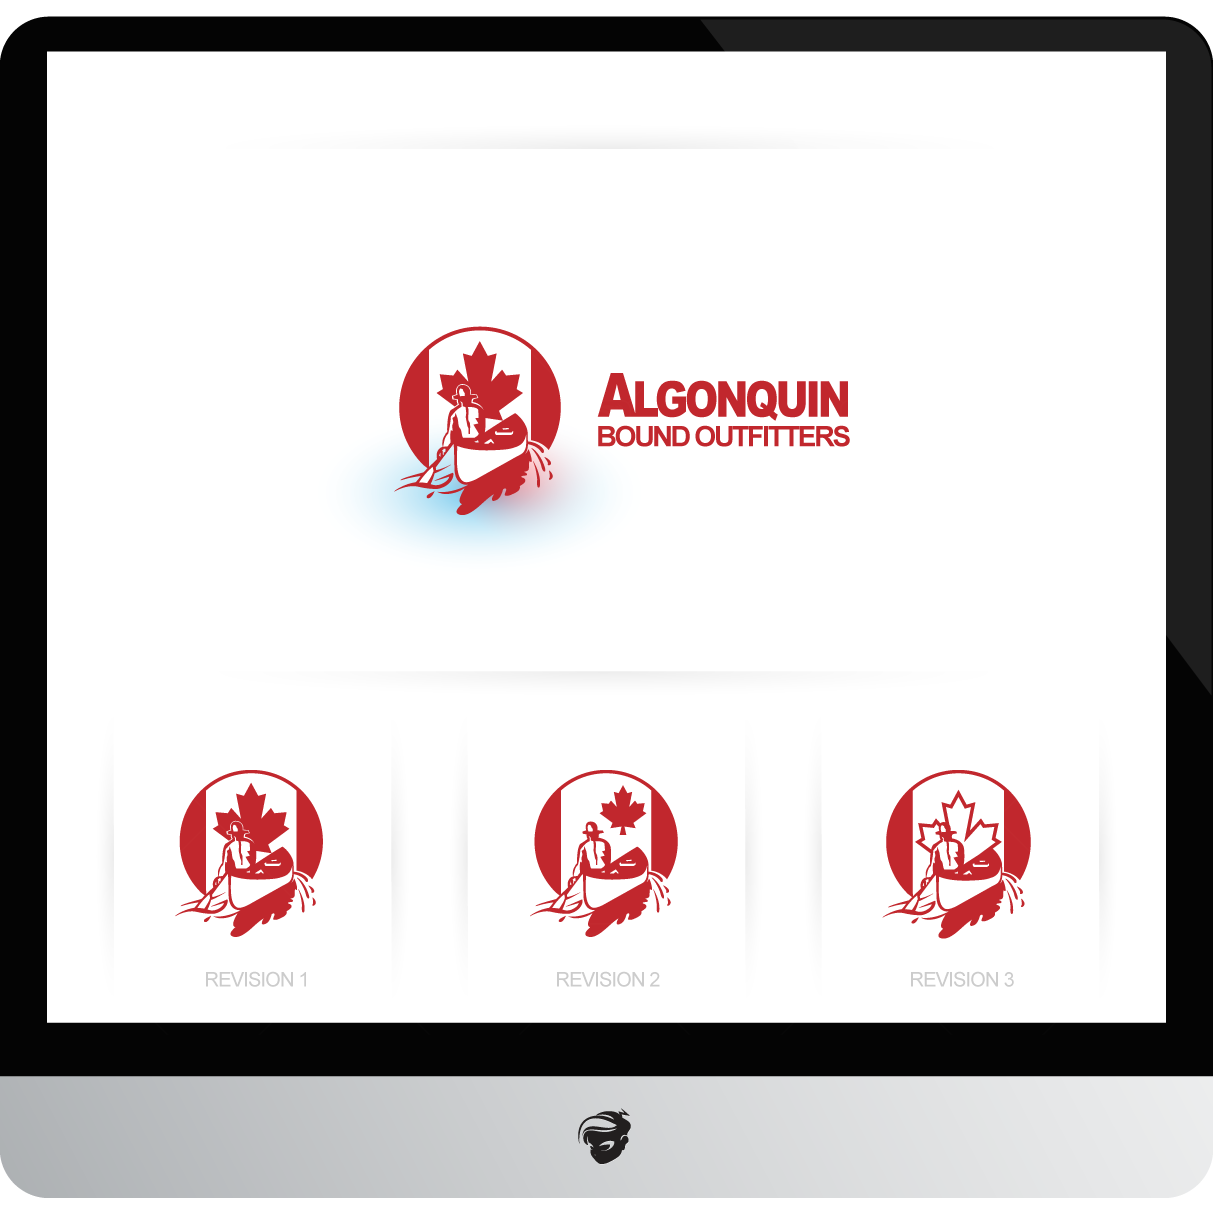 Logo Design by zesthar - Entry No. 93 in the Logo Design Contest Captivating Logo Design for Algonquin Bound Outfitters.